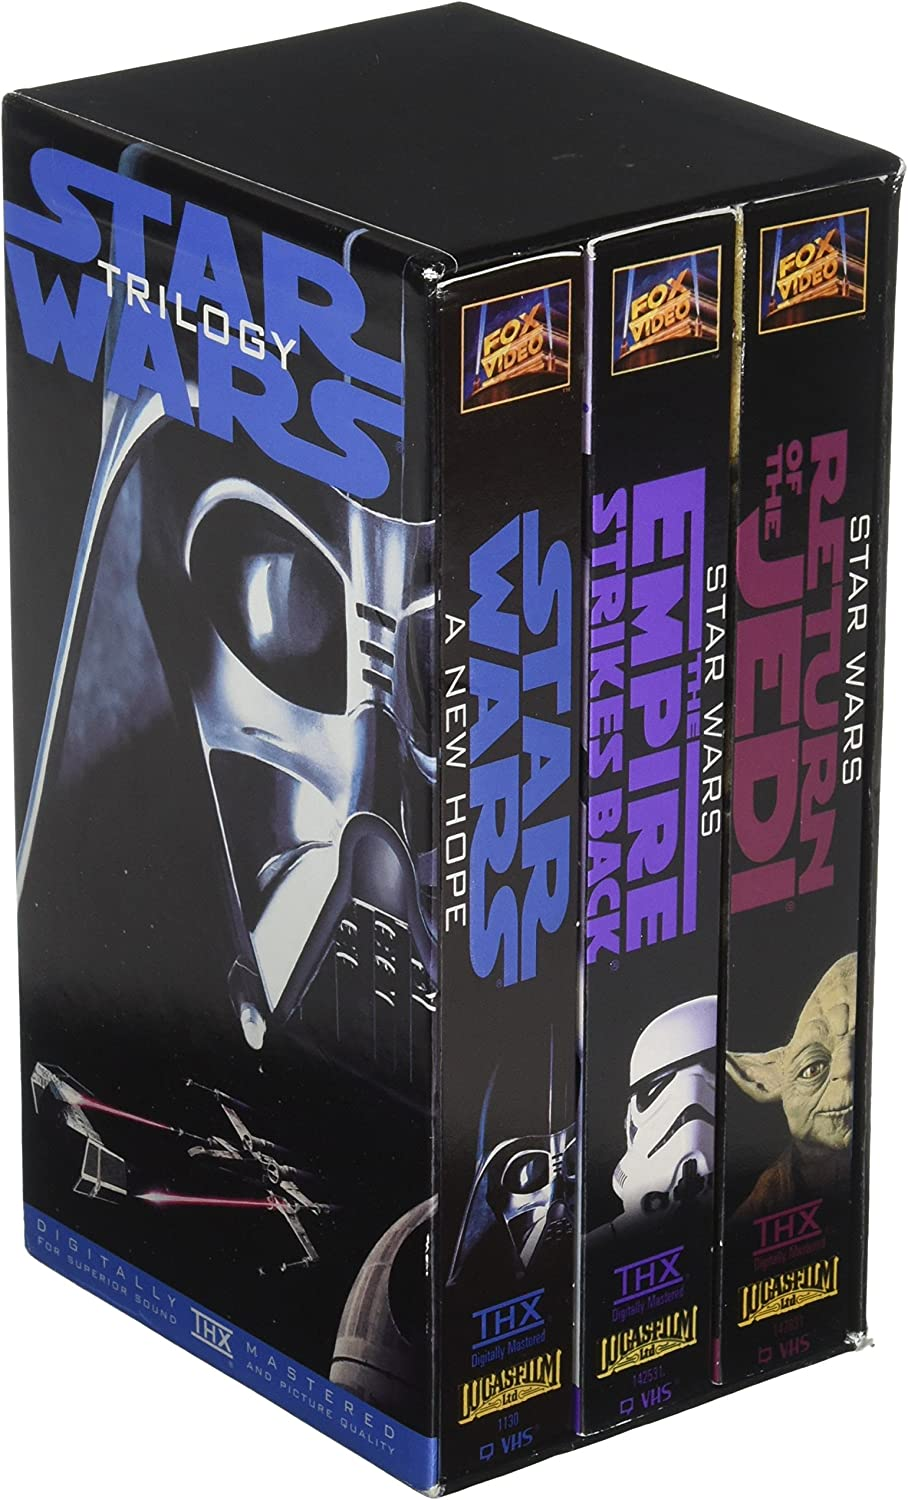 Amazon Com Original Version Star Wars Trilogy Vhs Box Set 1995 Carrie Fisher Harrison Ford Mark Hamill Movies Tv